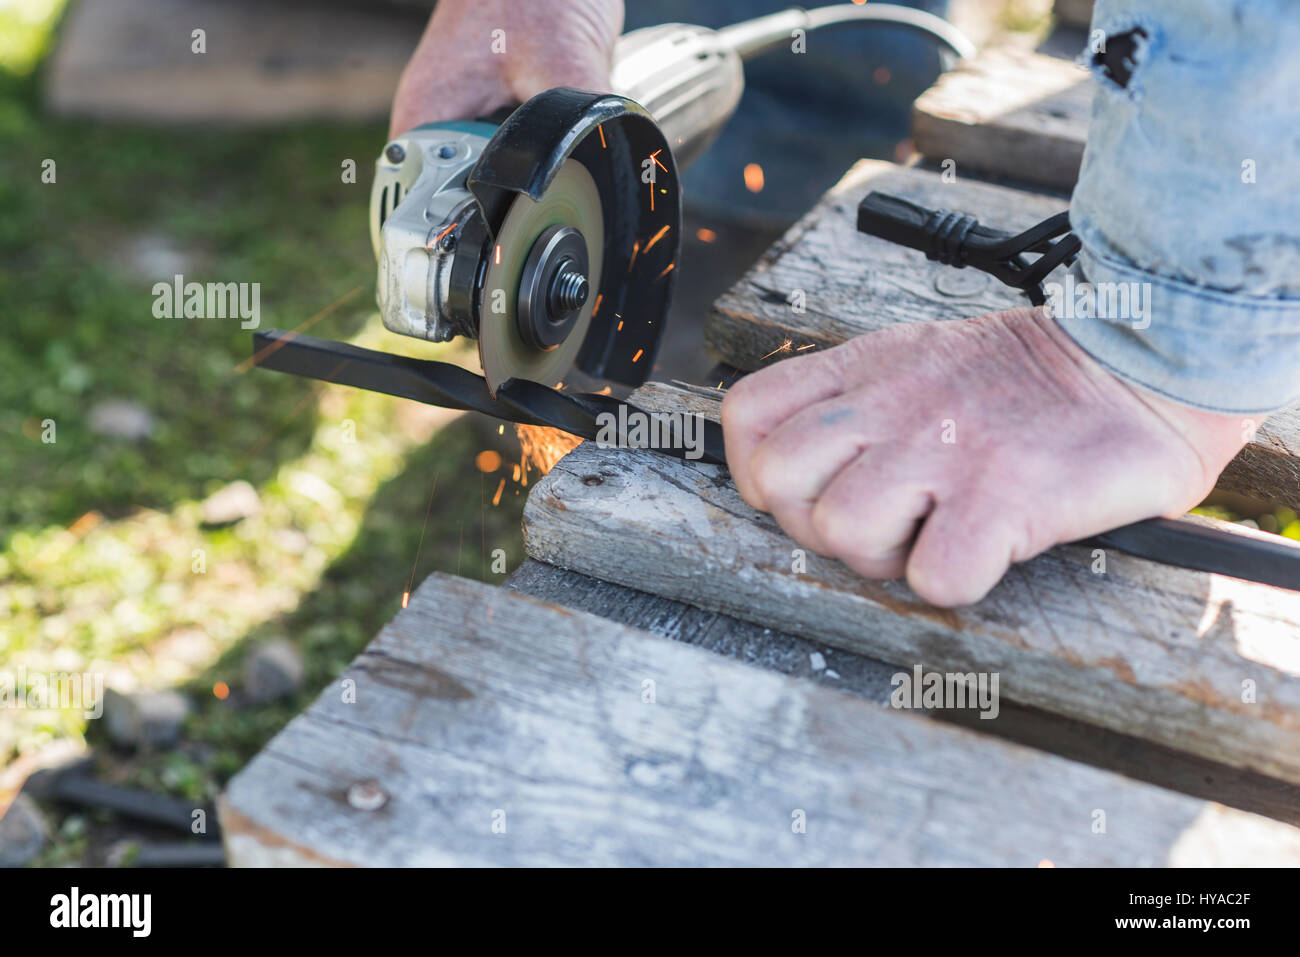 The process of cutting metal using the angle grinder. - Stock Image